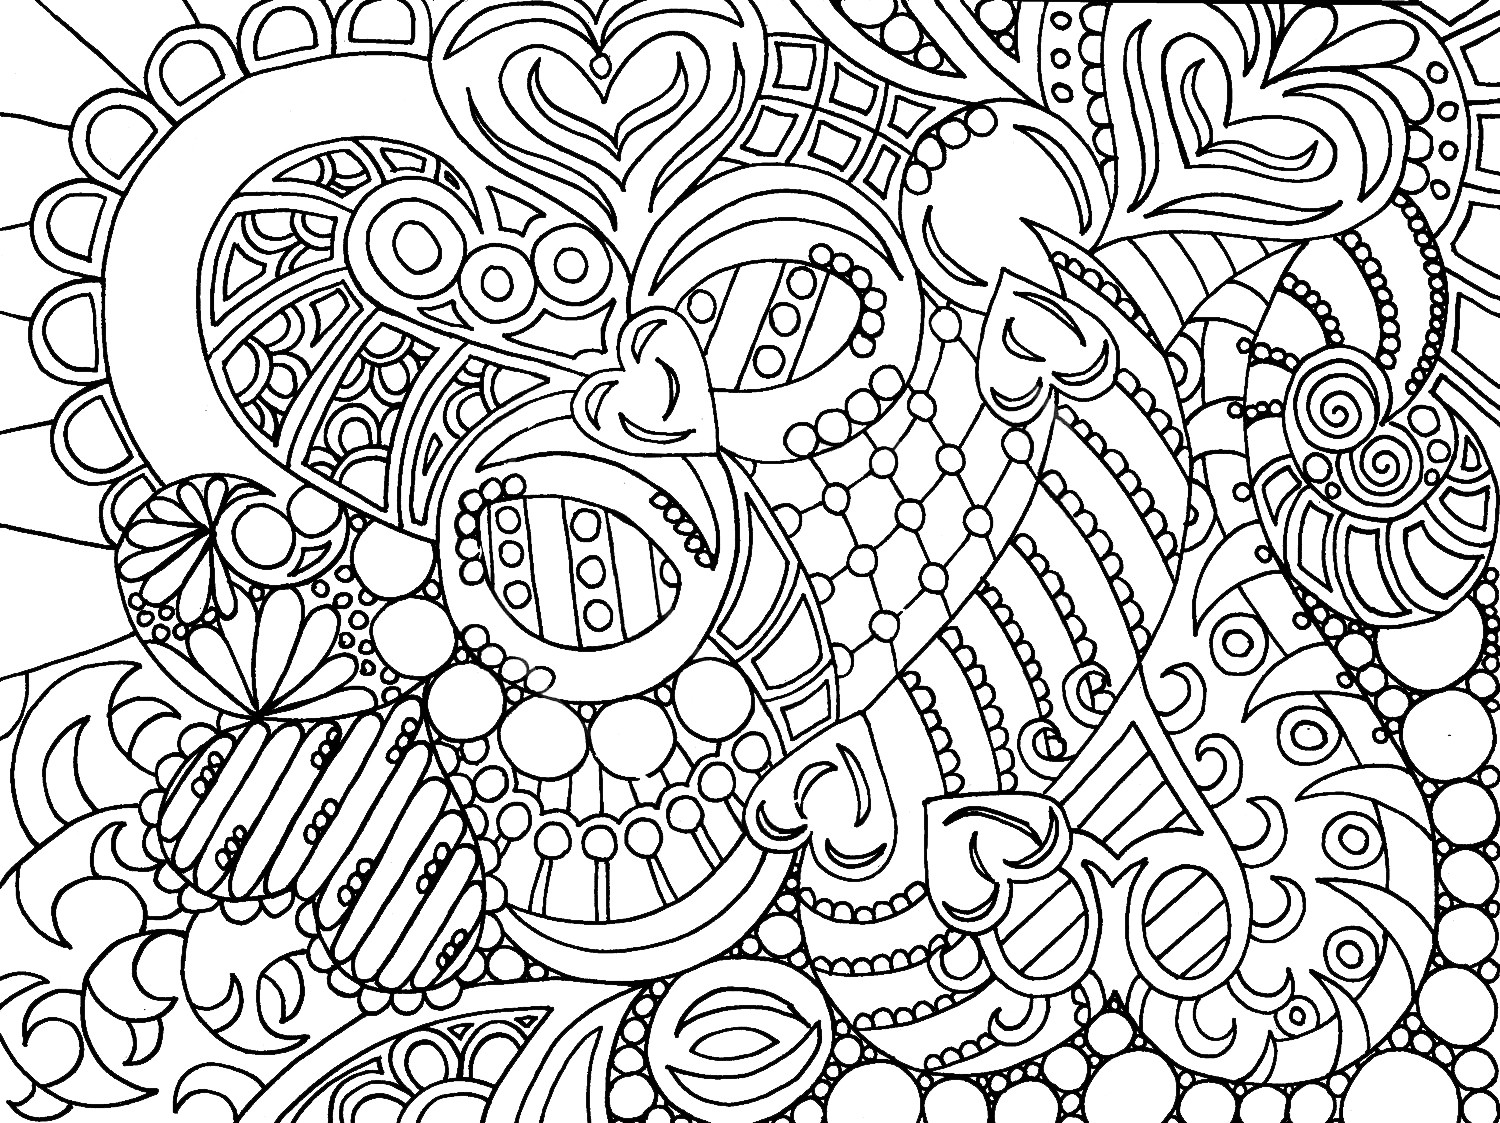 Free Coloring Pages For Adults  free coloring pages for adults